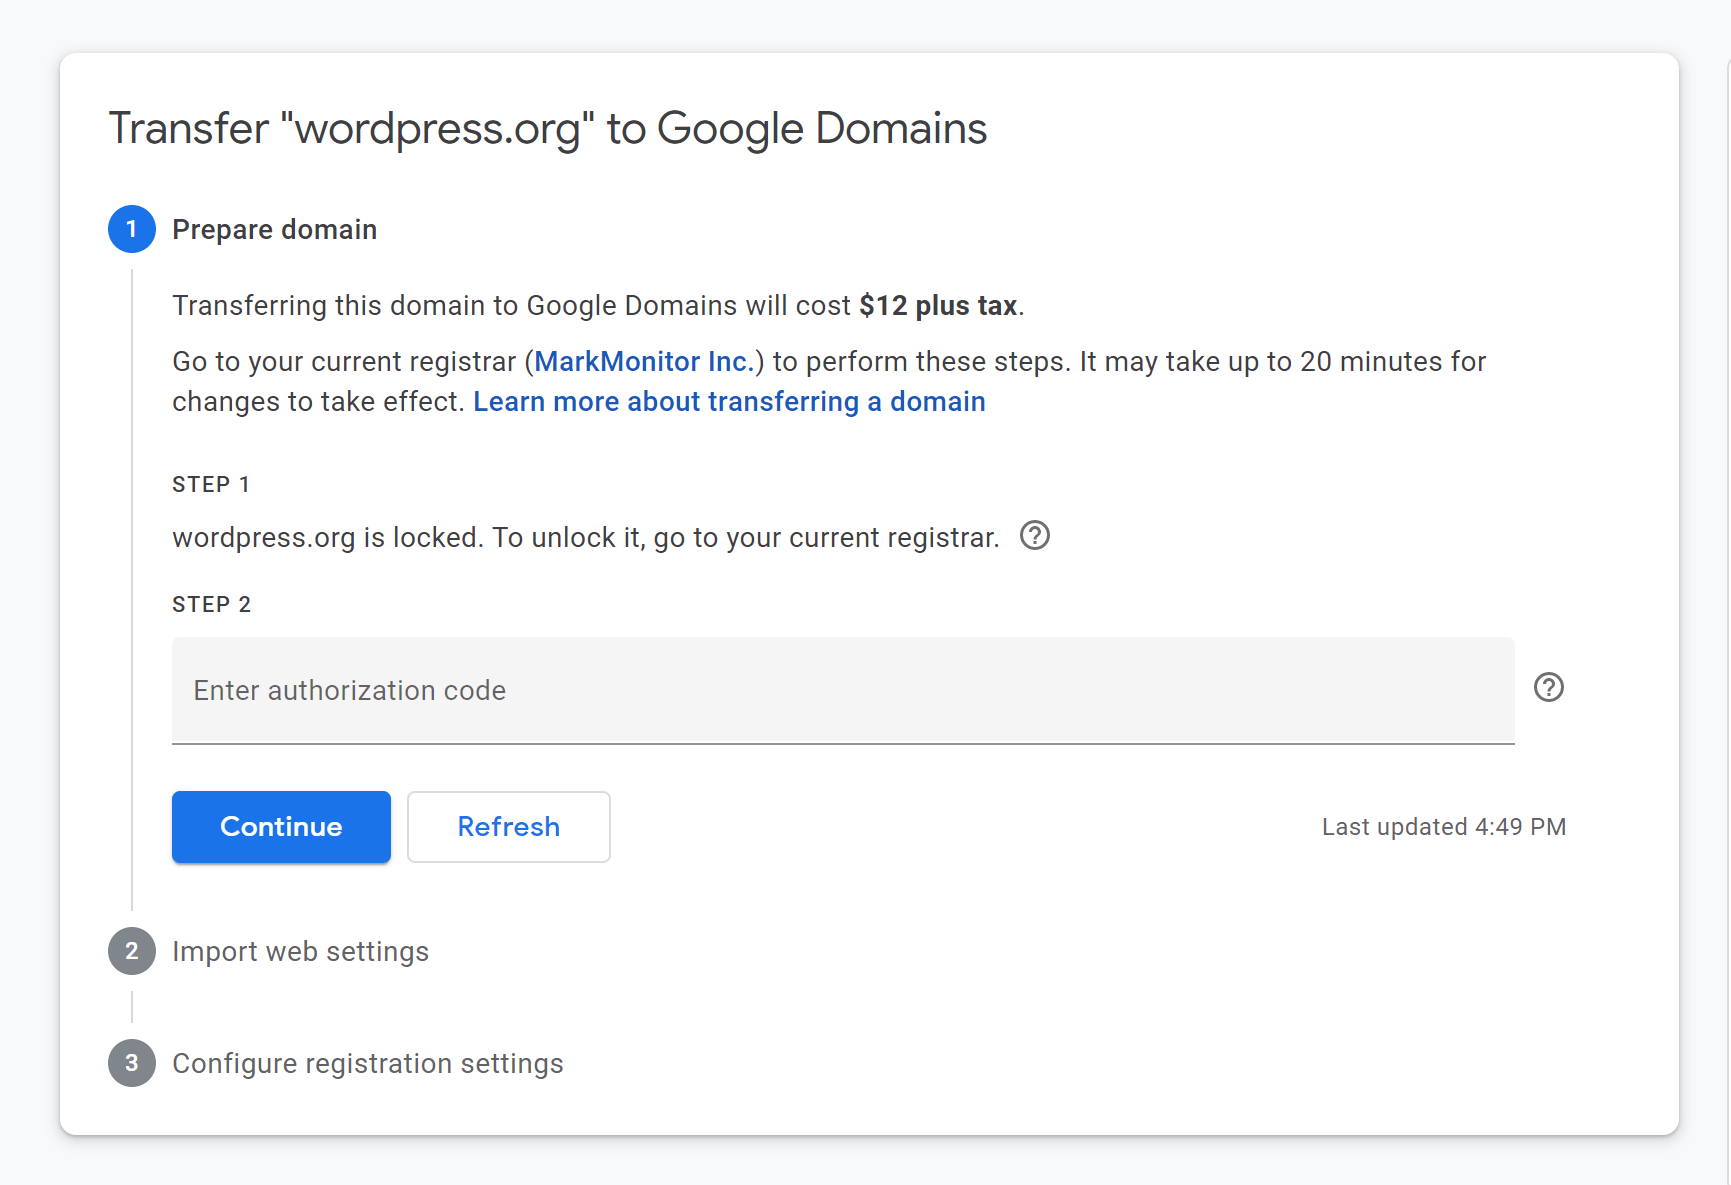 The Google Domains transfer wizard